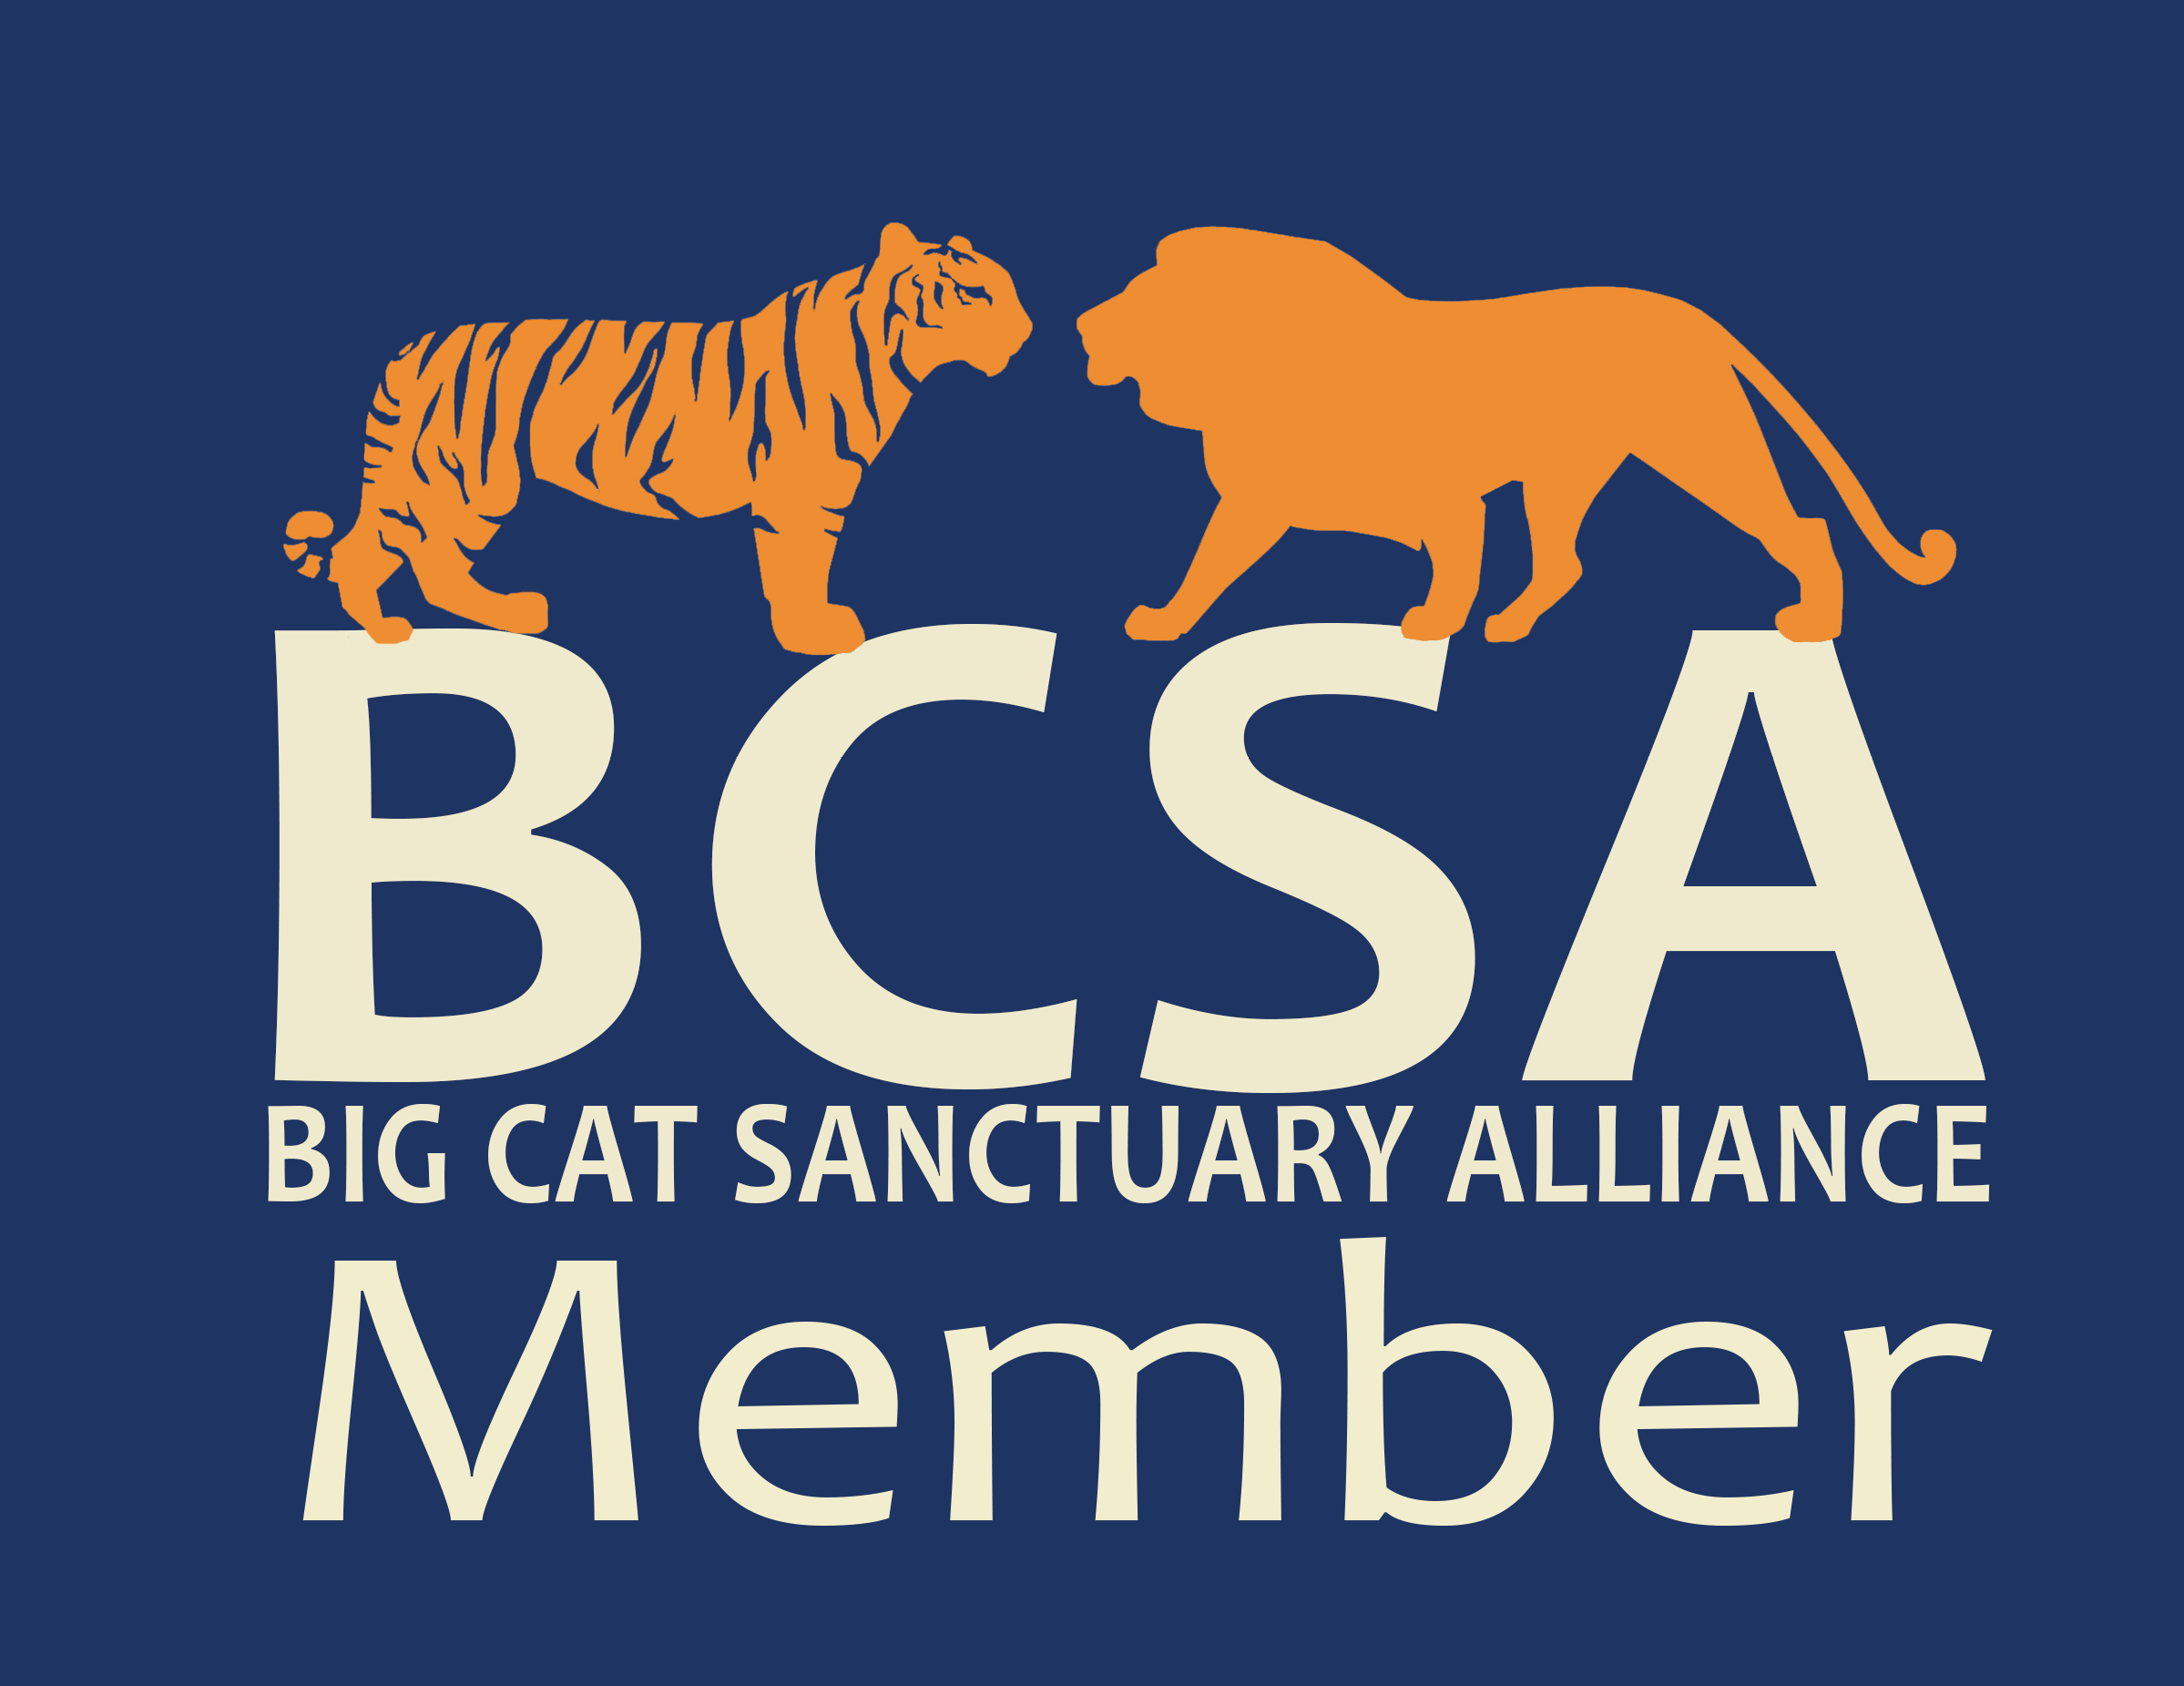 Big Cat Sanctuary Alliance